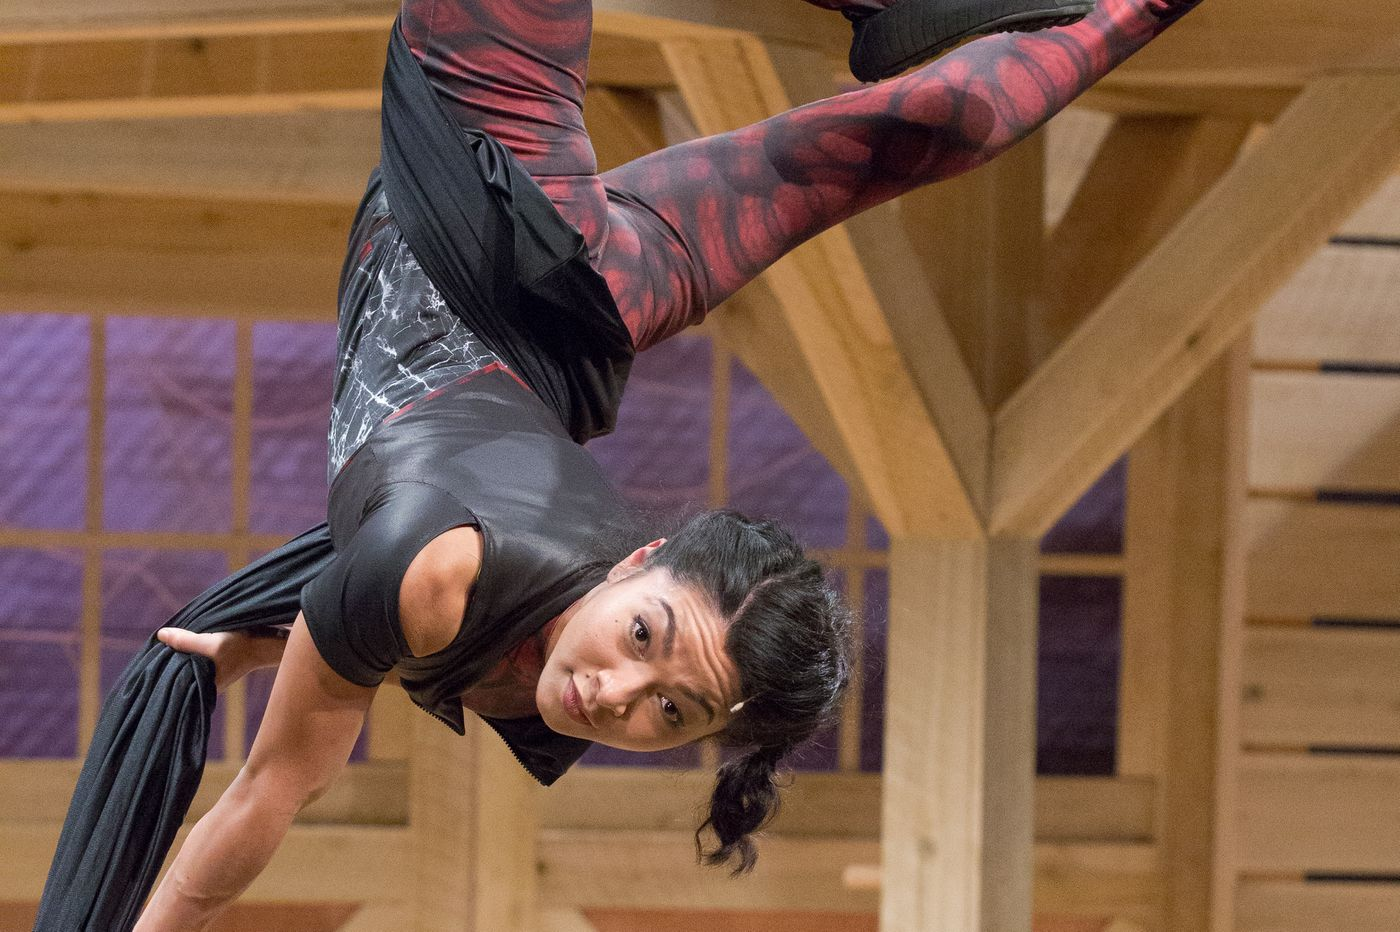 Meet the spider star of Arden Theatre's new 'Charlotte's Web.' (She's a contortionist.)